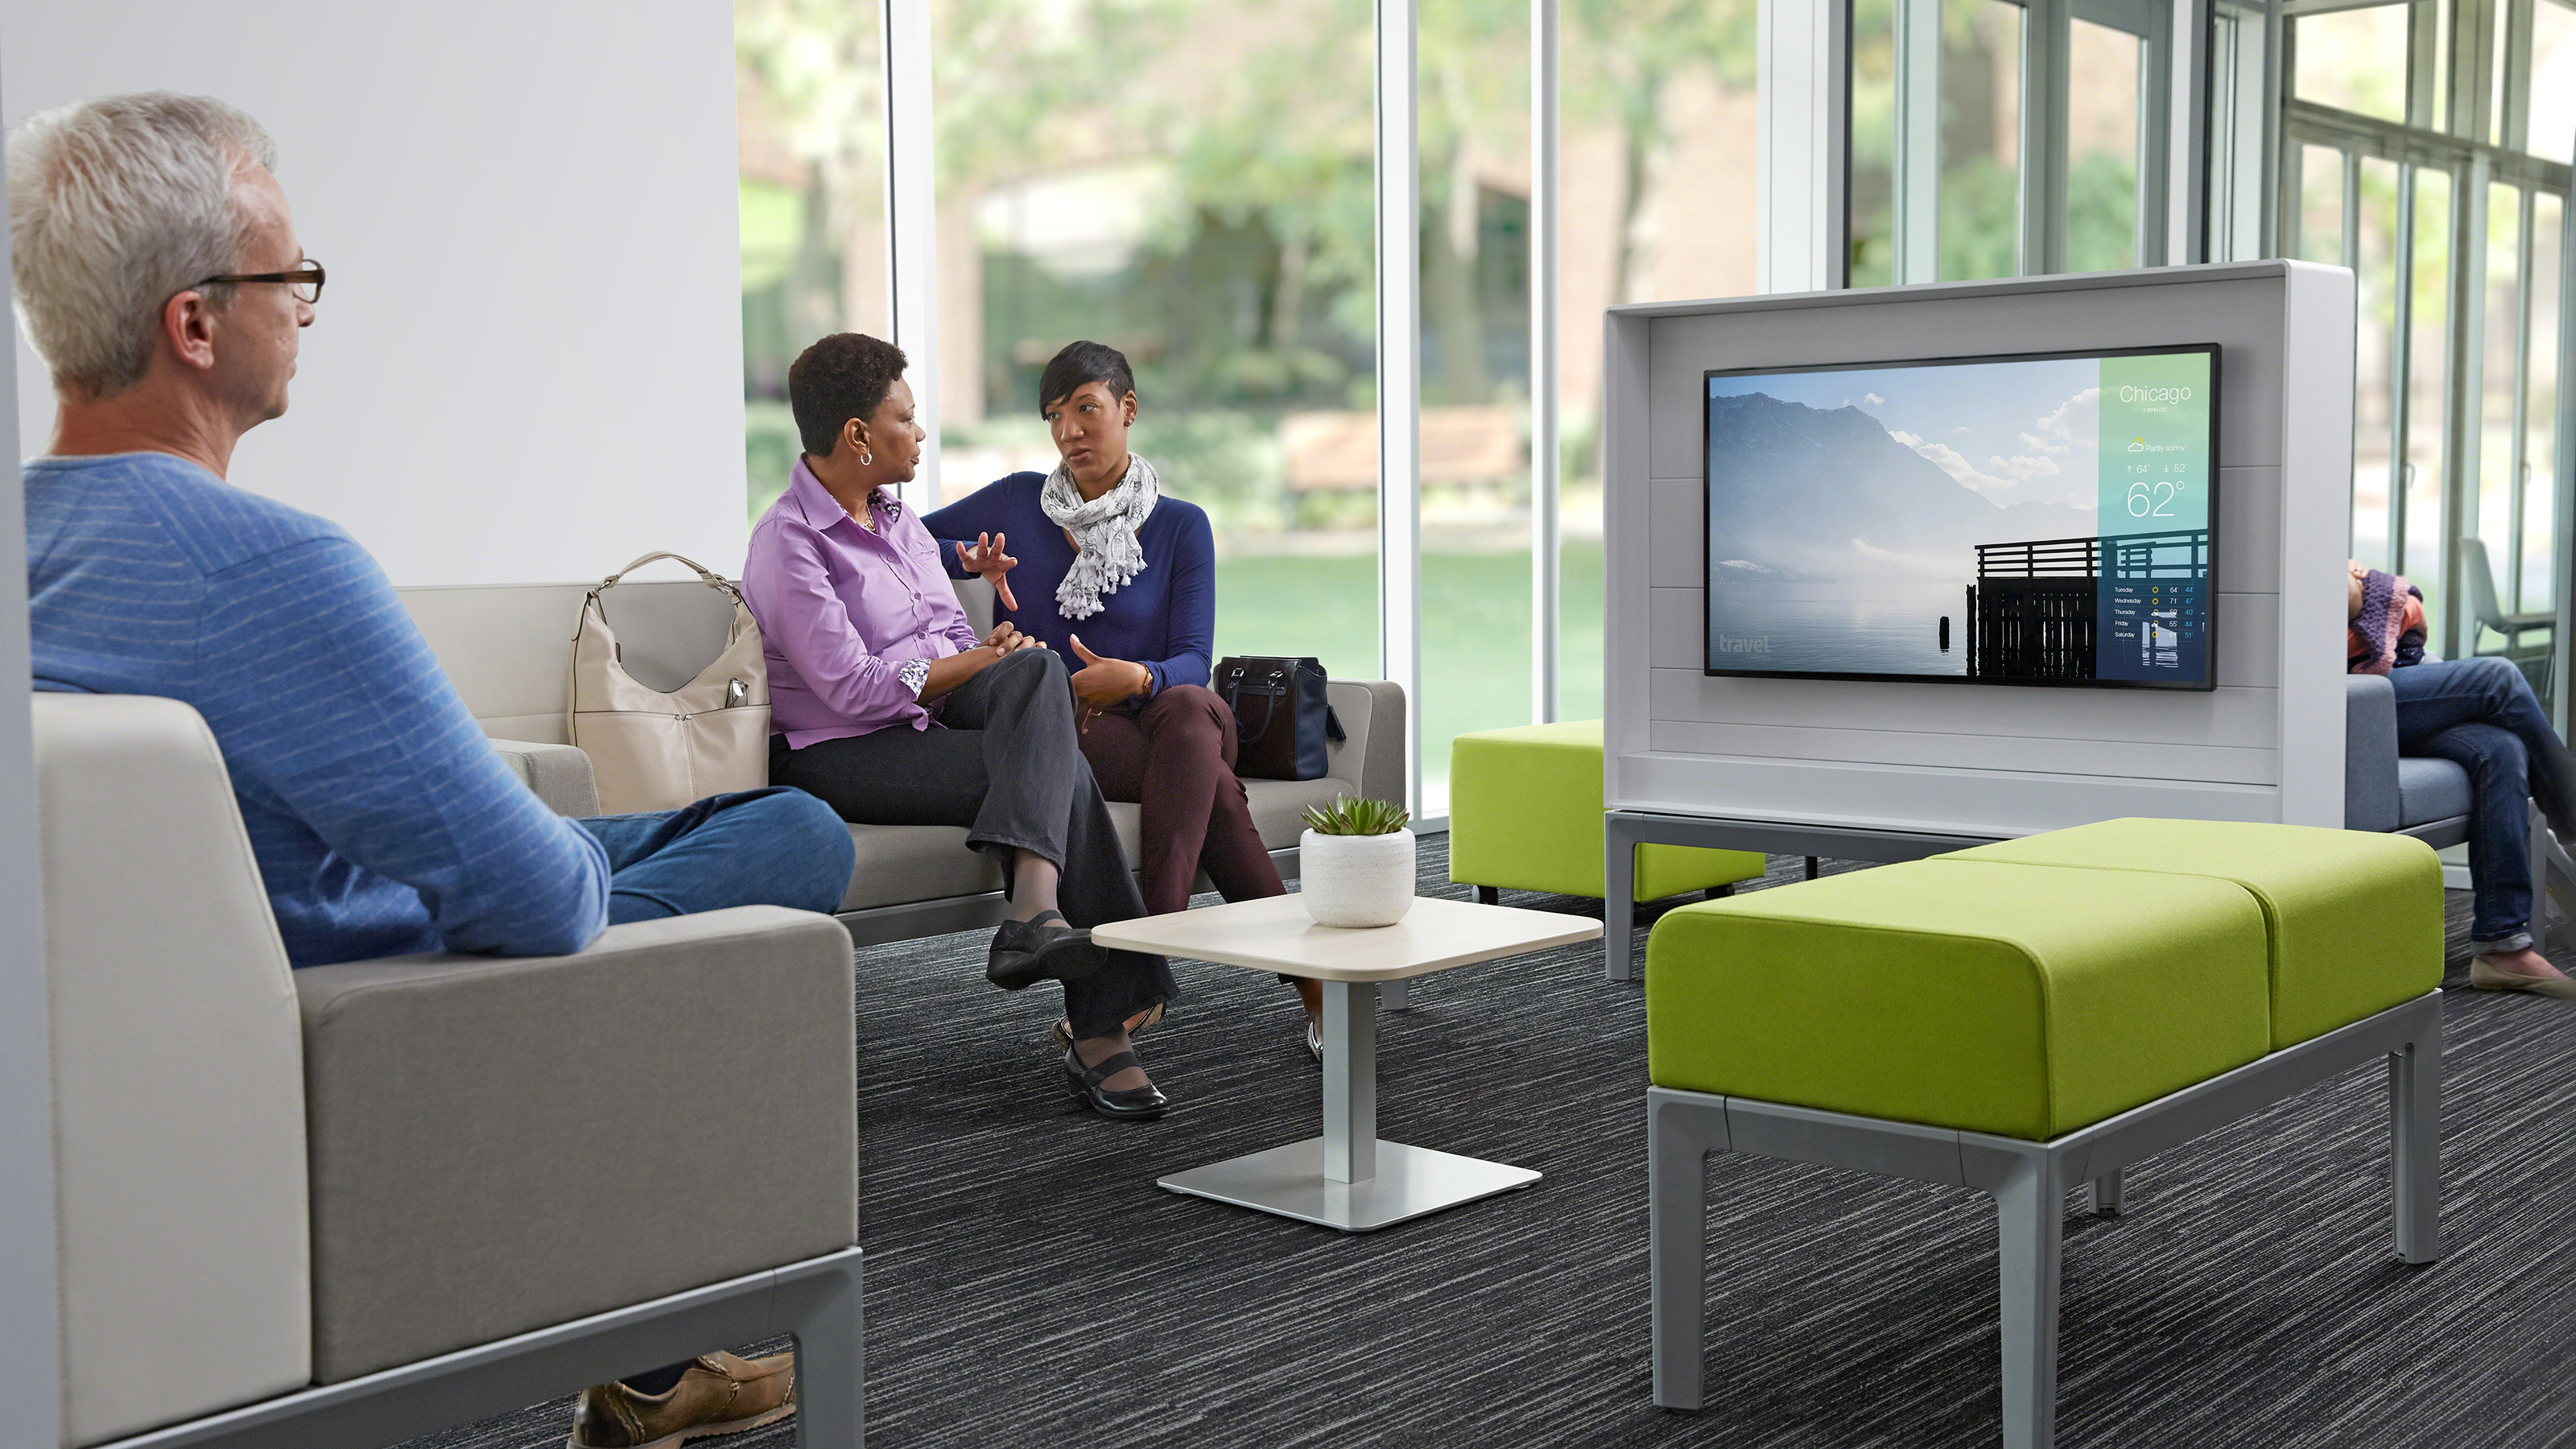 Connected waiting room chairs - New Insight Into The Patient Experience